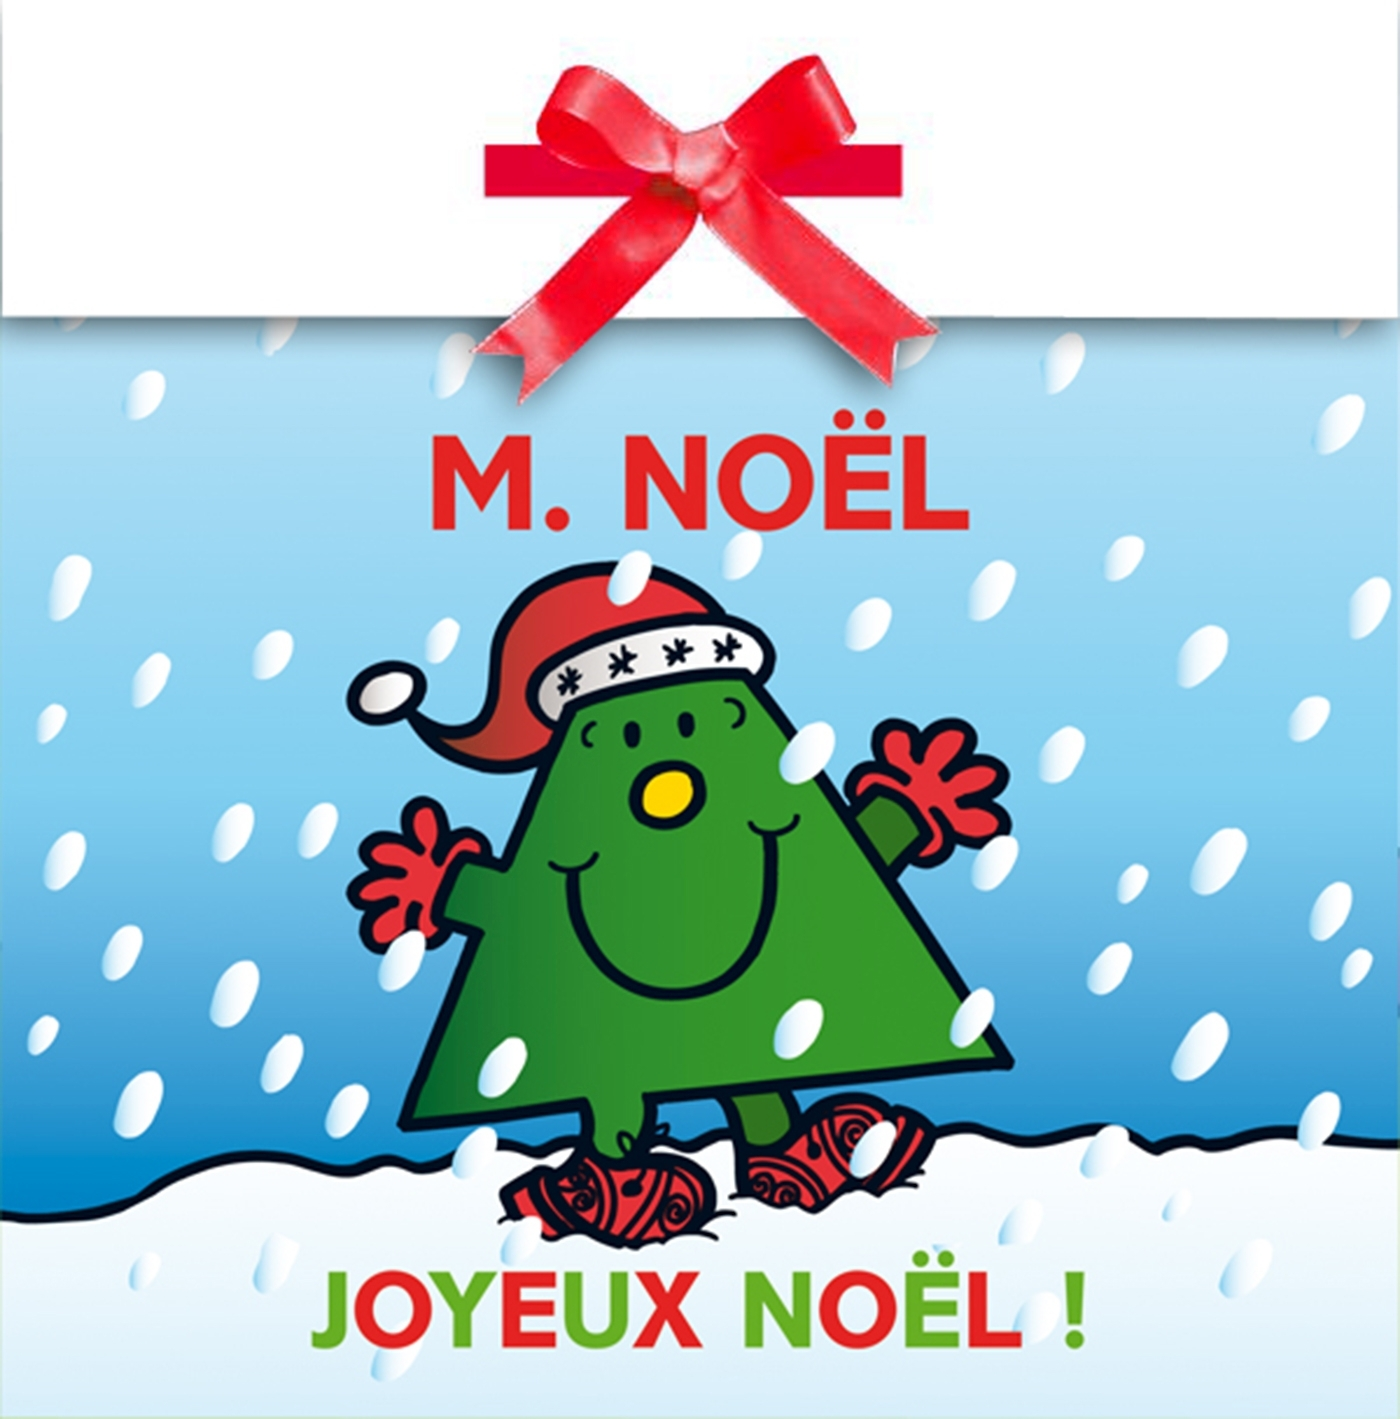 MONSIEUR MADAME / POCHETTE SURPRISE M. NOEL